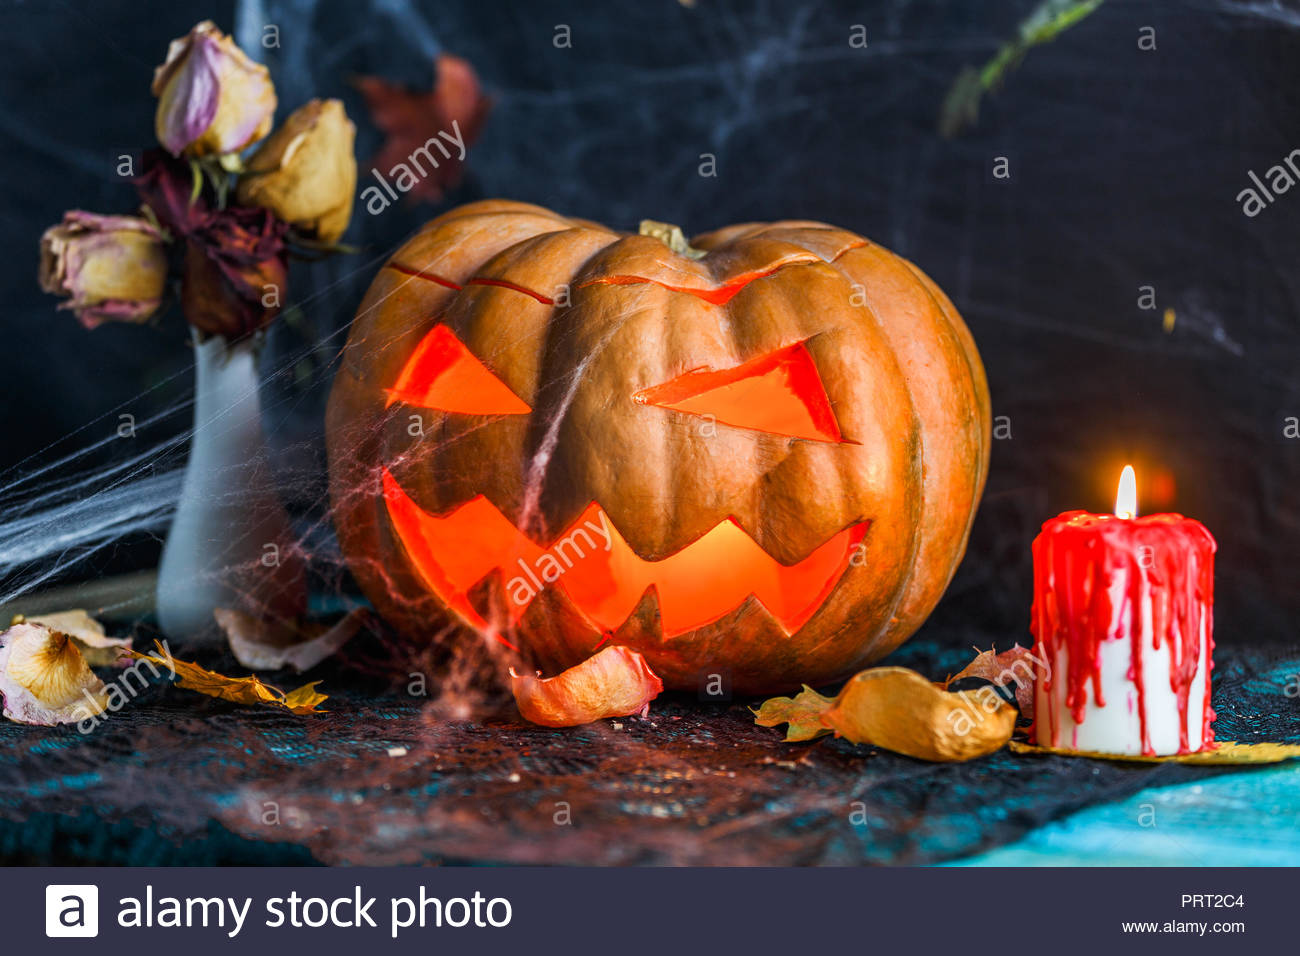 halloween picture of table with pumpkin burning candle PRT2C4